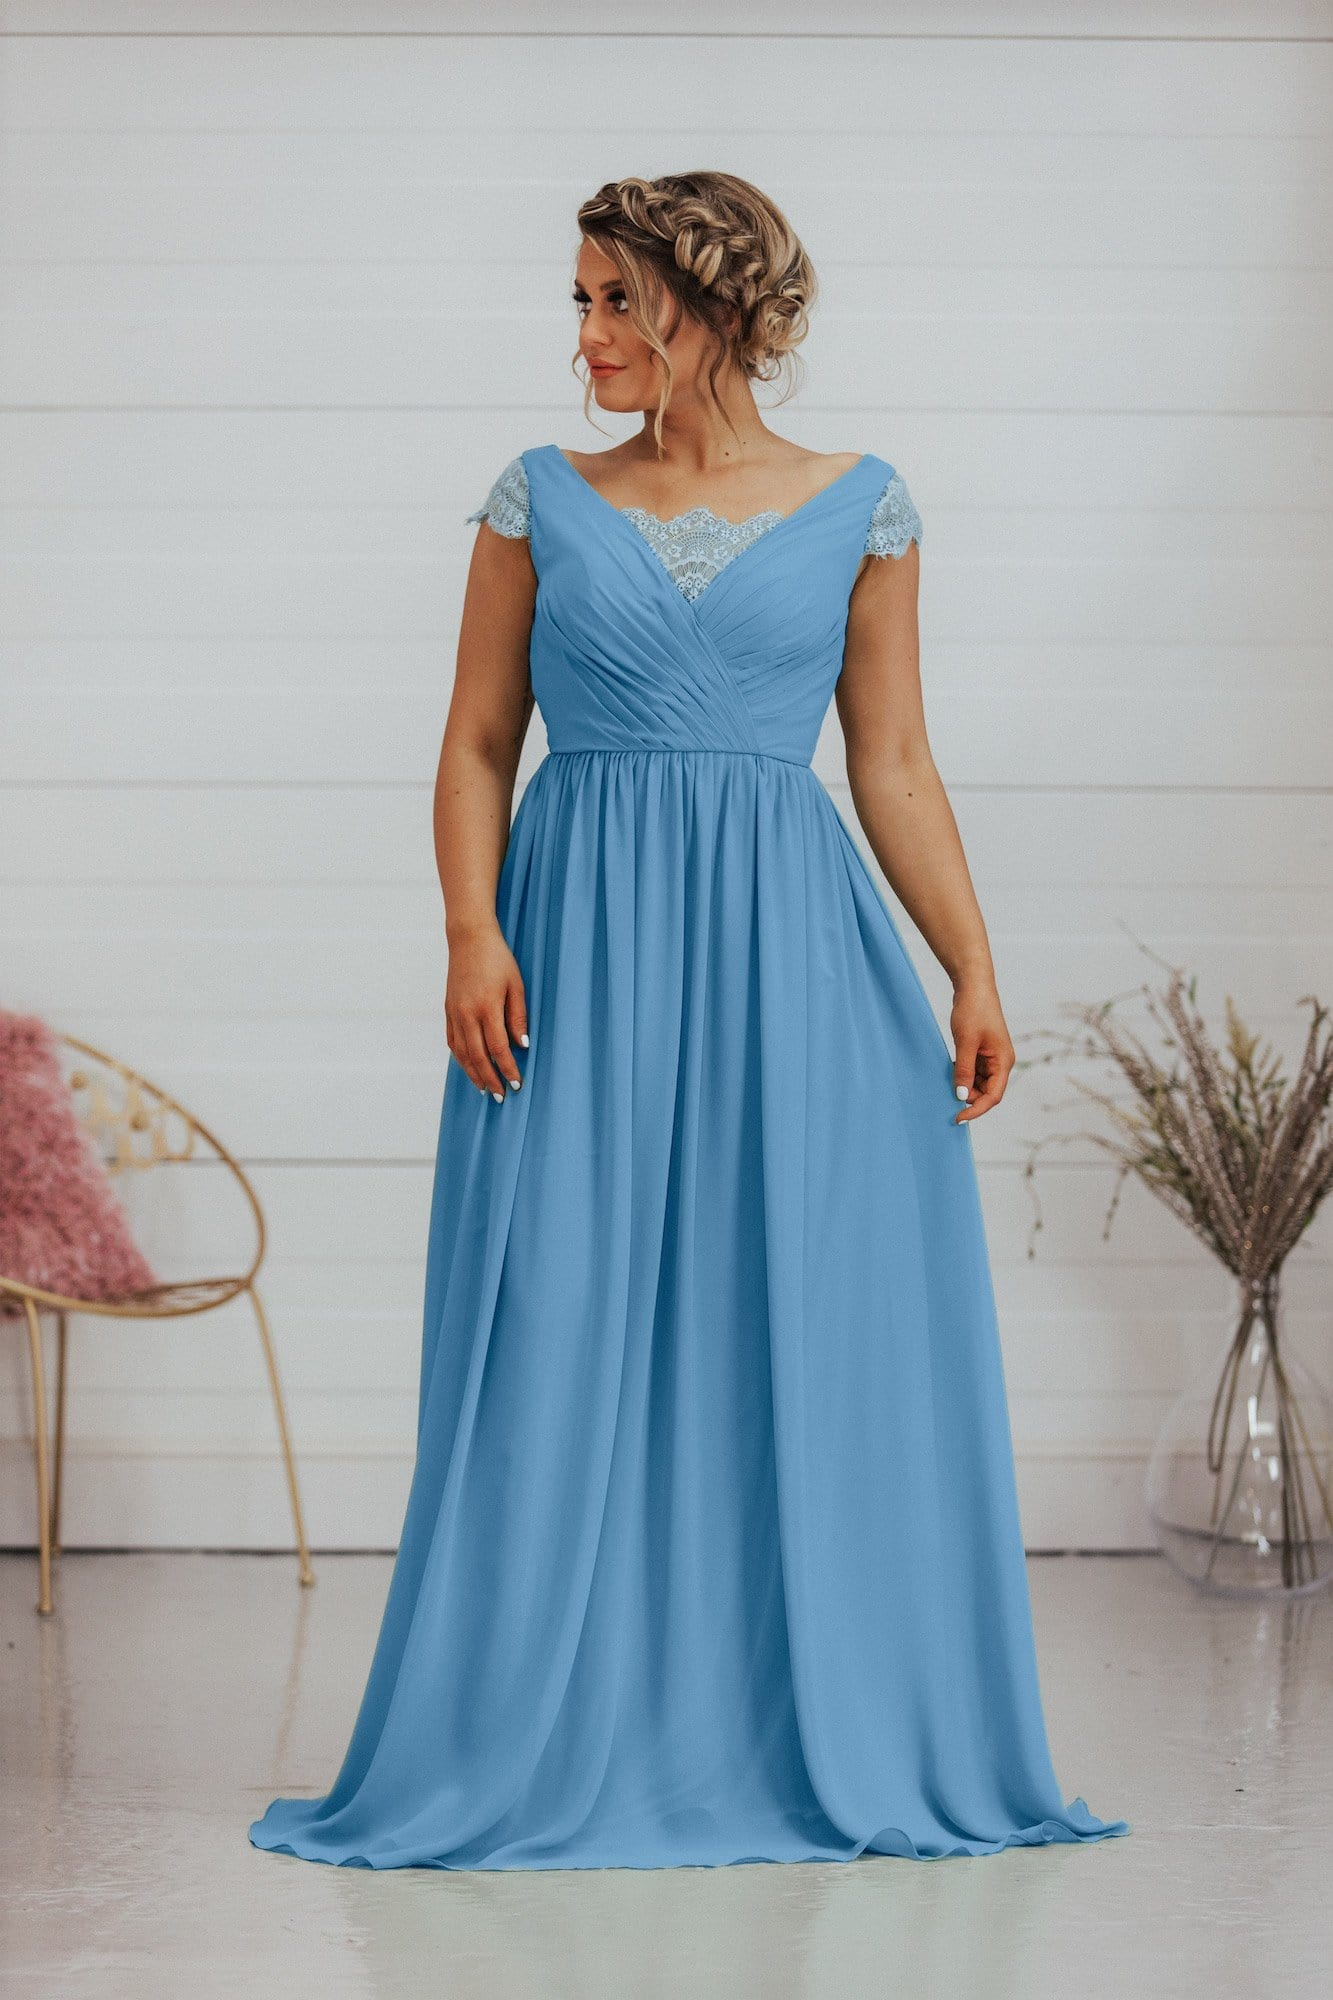 Chloe Dress | Lace Capped Sleeve Chiffon Bridesmaid Dress - That Special Day Bridal Warehouse